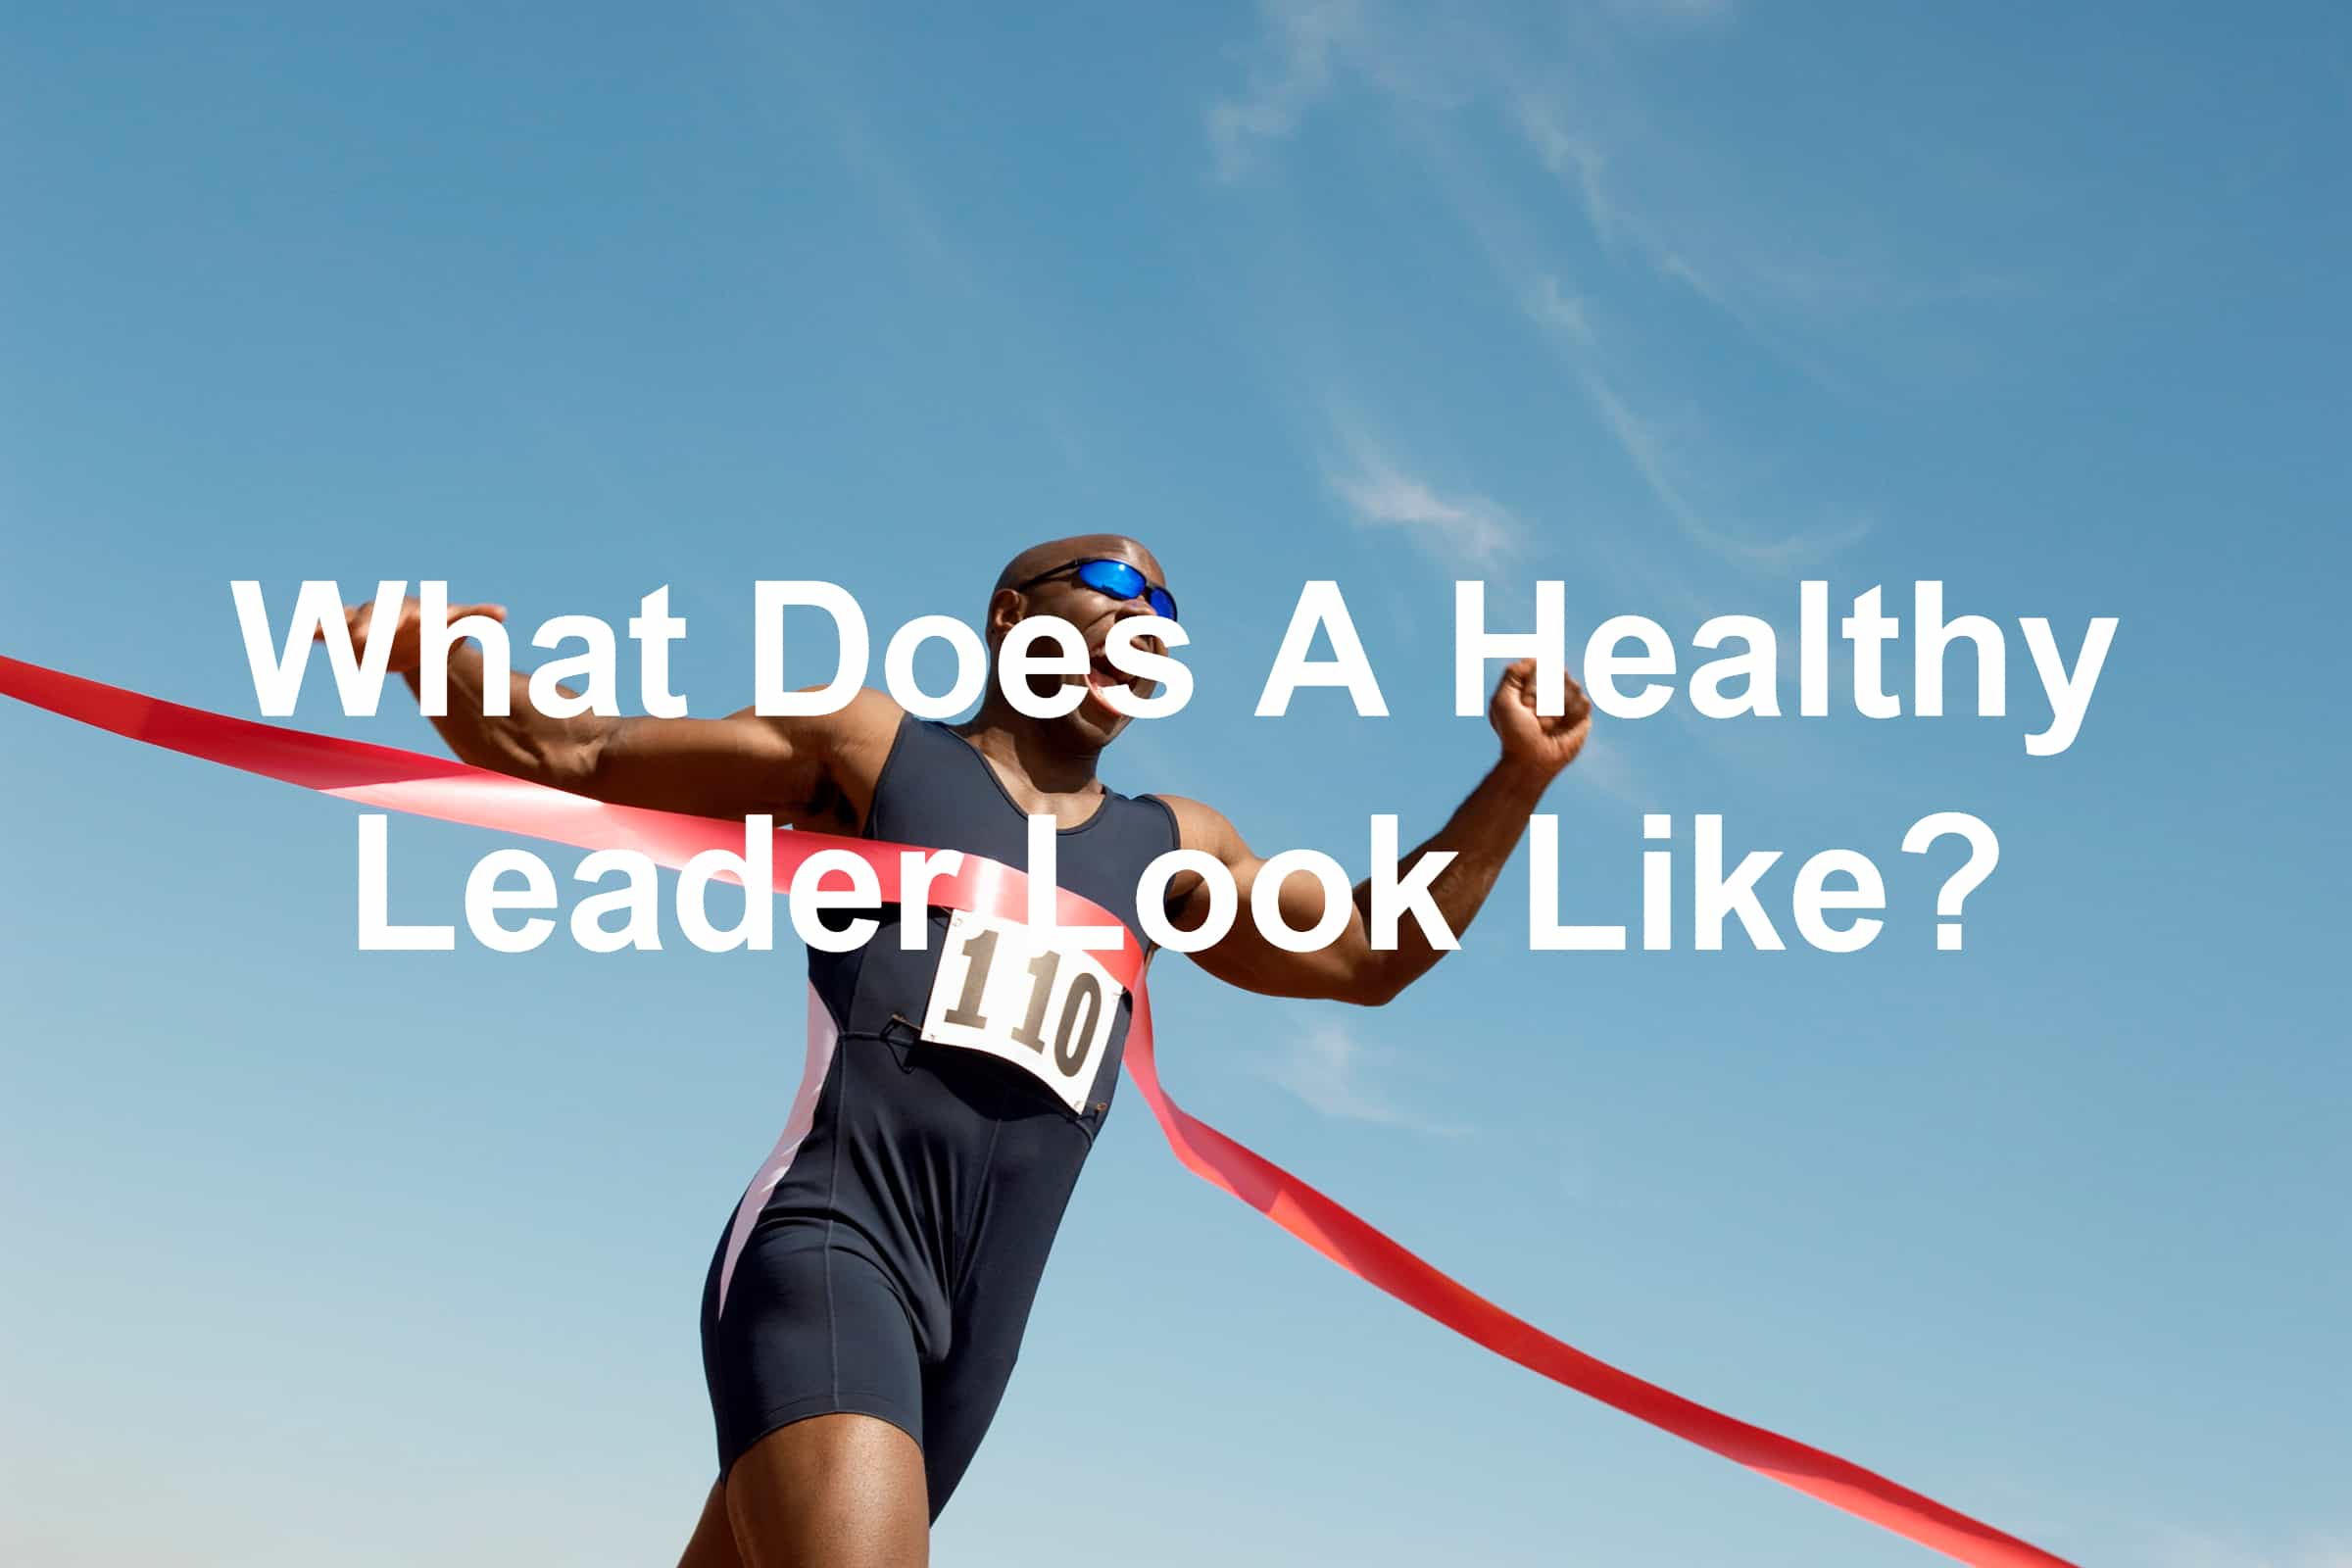 On becoming a healthy leader - Runner crossing the finish line